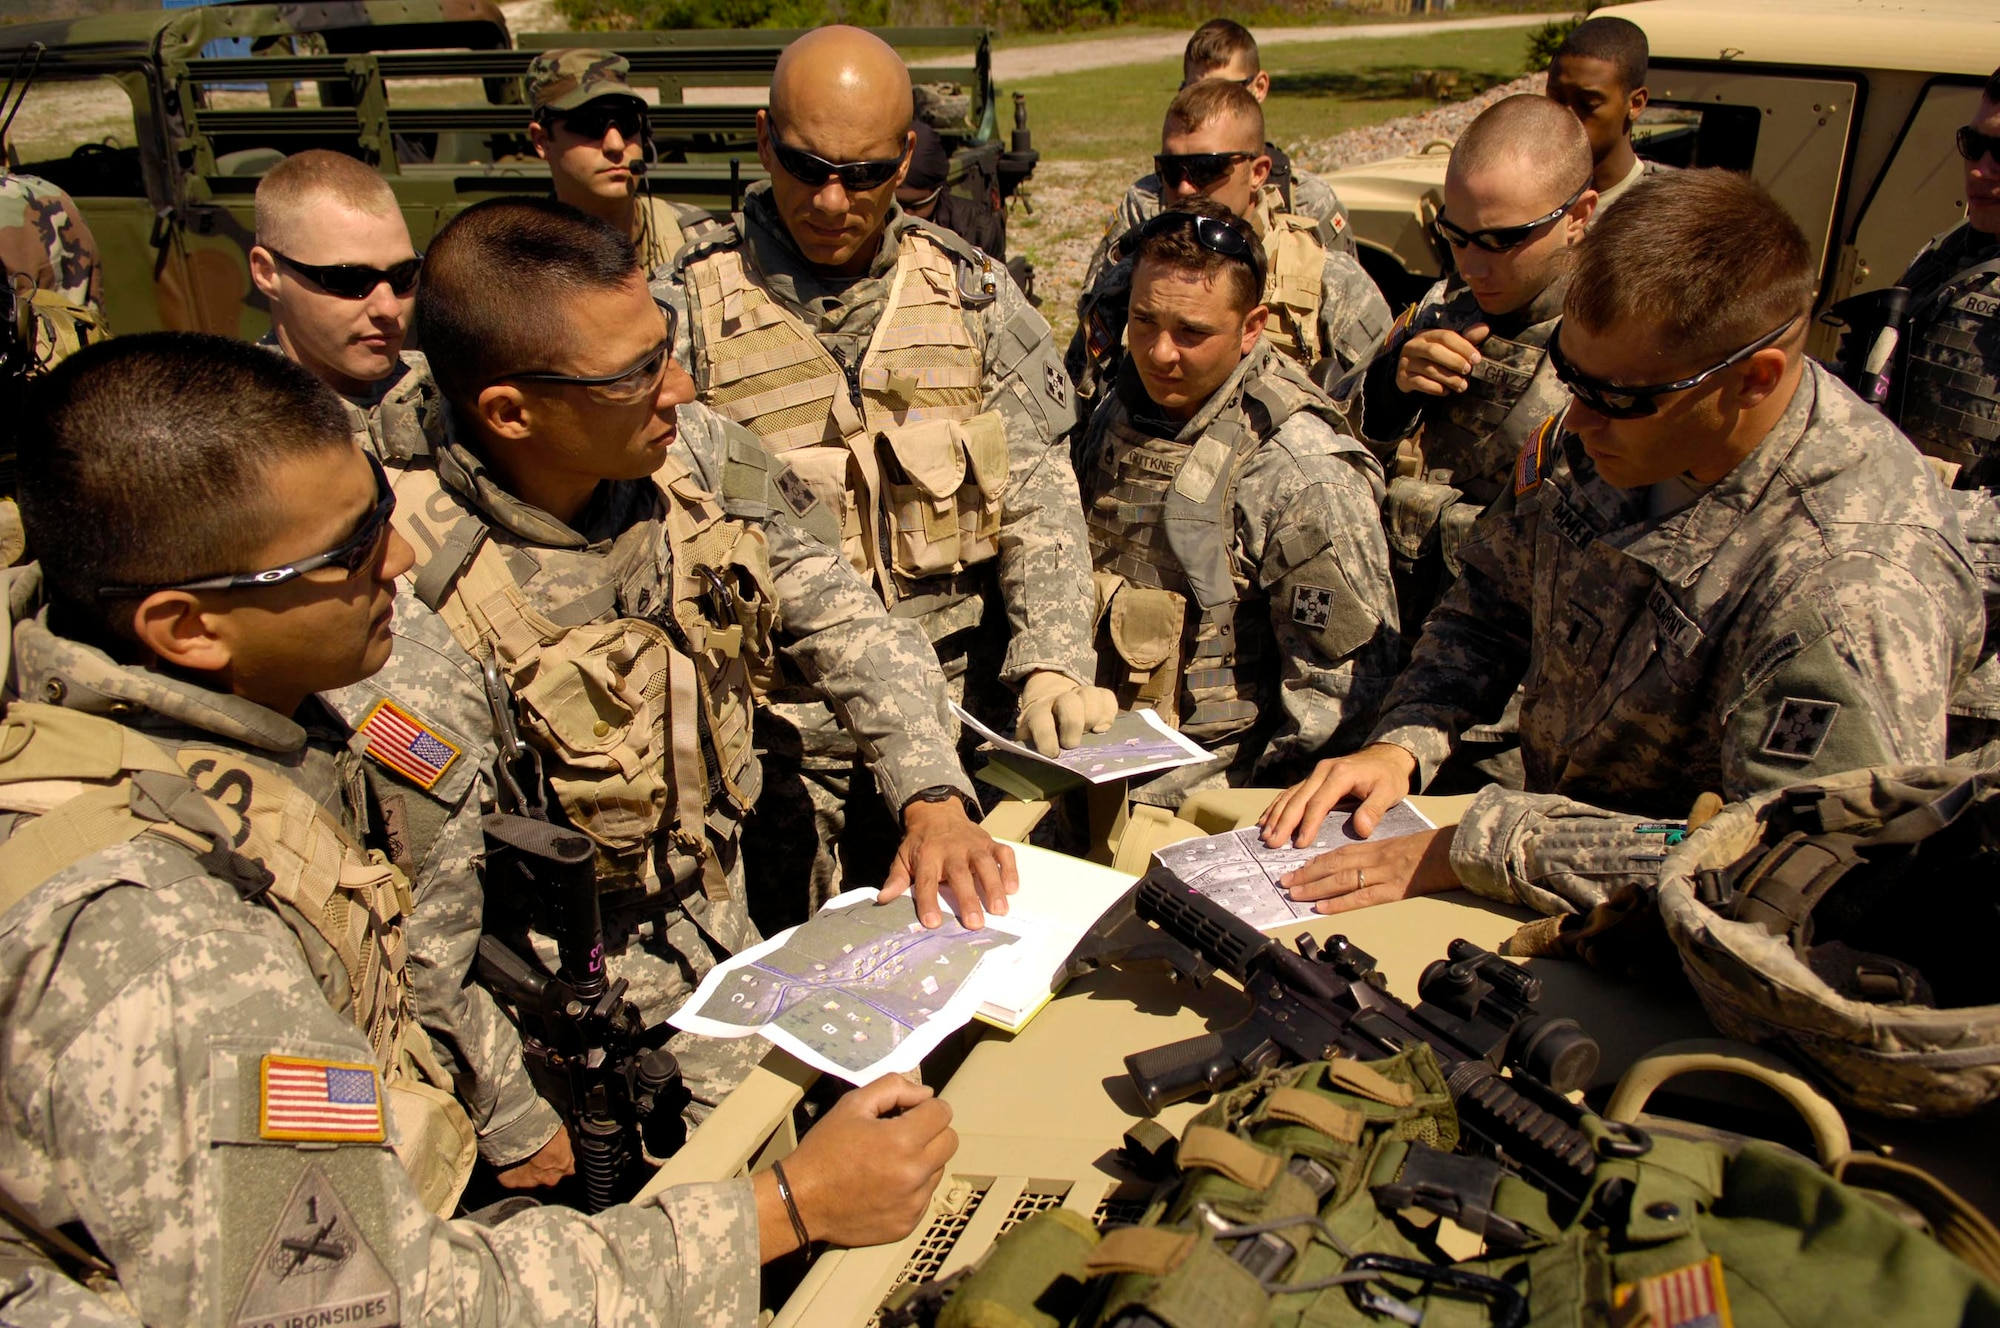 Members of the 4th Infantry Division from Fort Hood, Texas, receive an intelligence briefing before participating in Atlantic Strike V April 16 at Avon Park, Fla. Atlantic Strike is a joint forces training event involving joint terminal attack controllers from the Army, Air Force and Marines and is held semi-annually at the Avon Park Air Ground Training Complex. (U.S. Air Force photo/Staff Sgt. Stephen J. Otero)